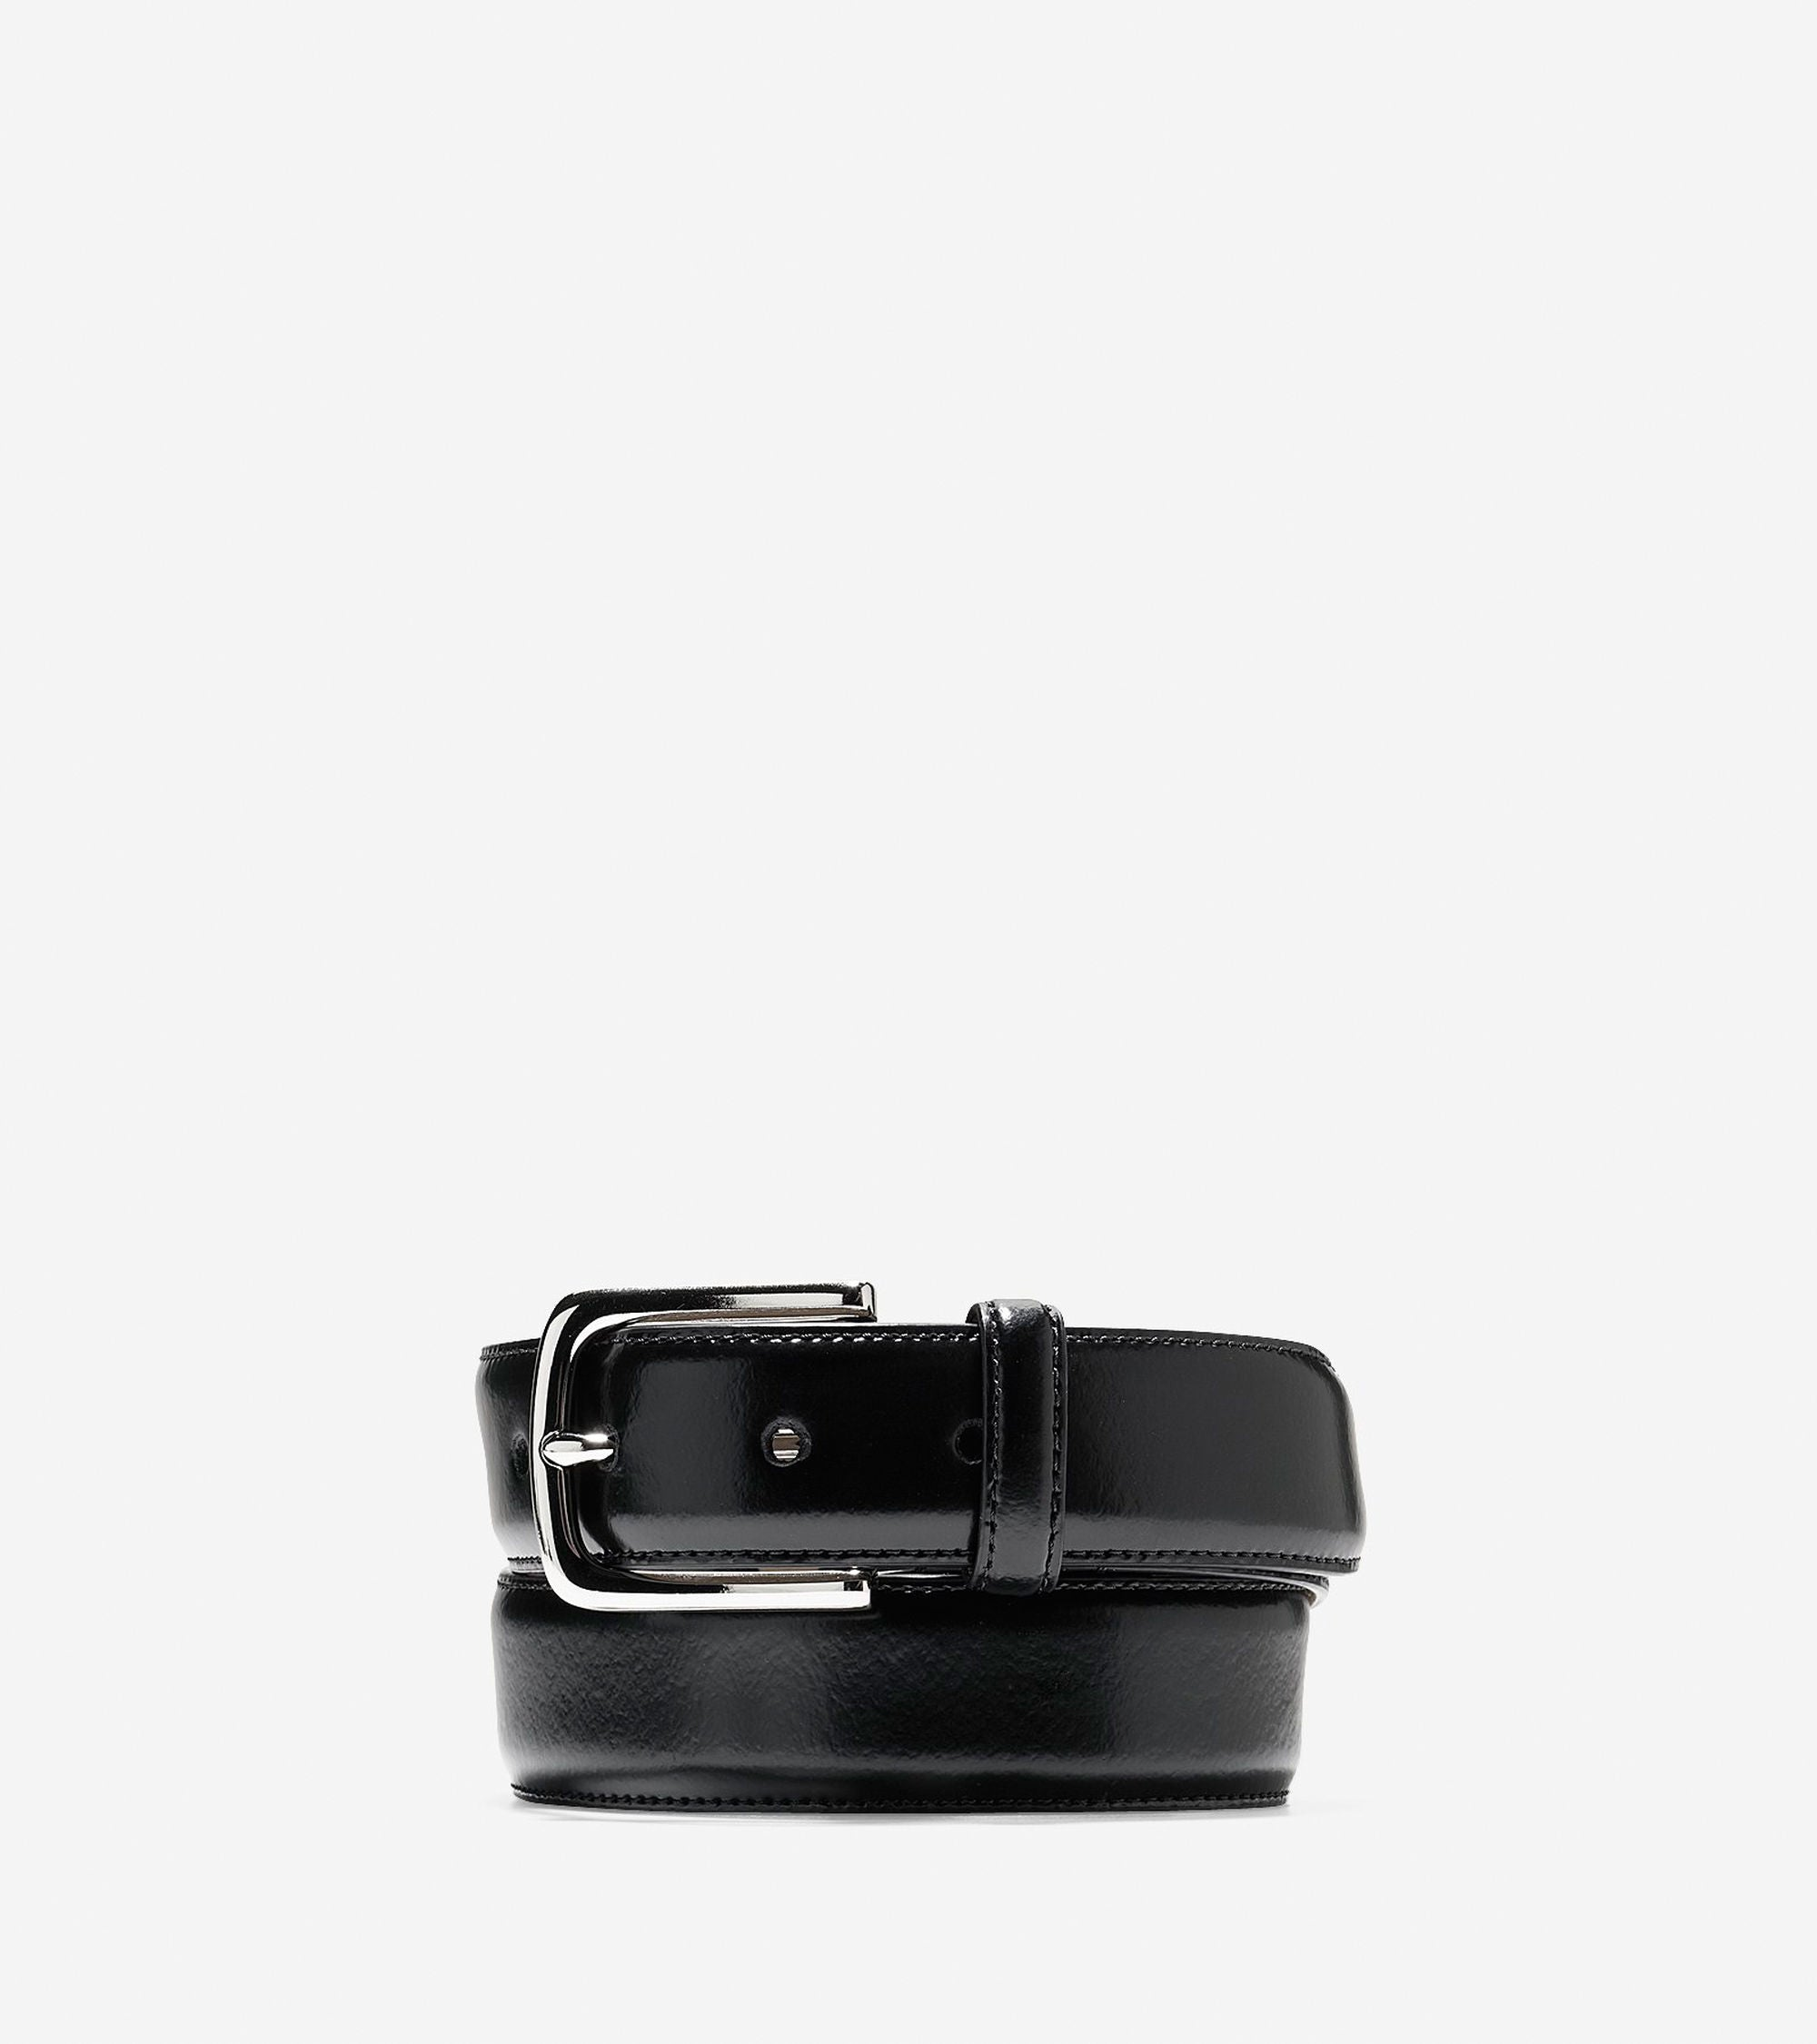 32mm Shine Dress Belt,BELT,Cole Haan, | GentRow.com